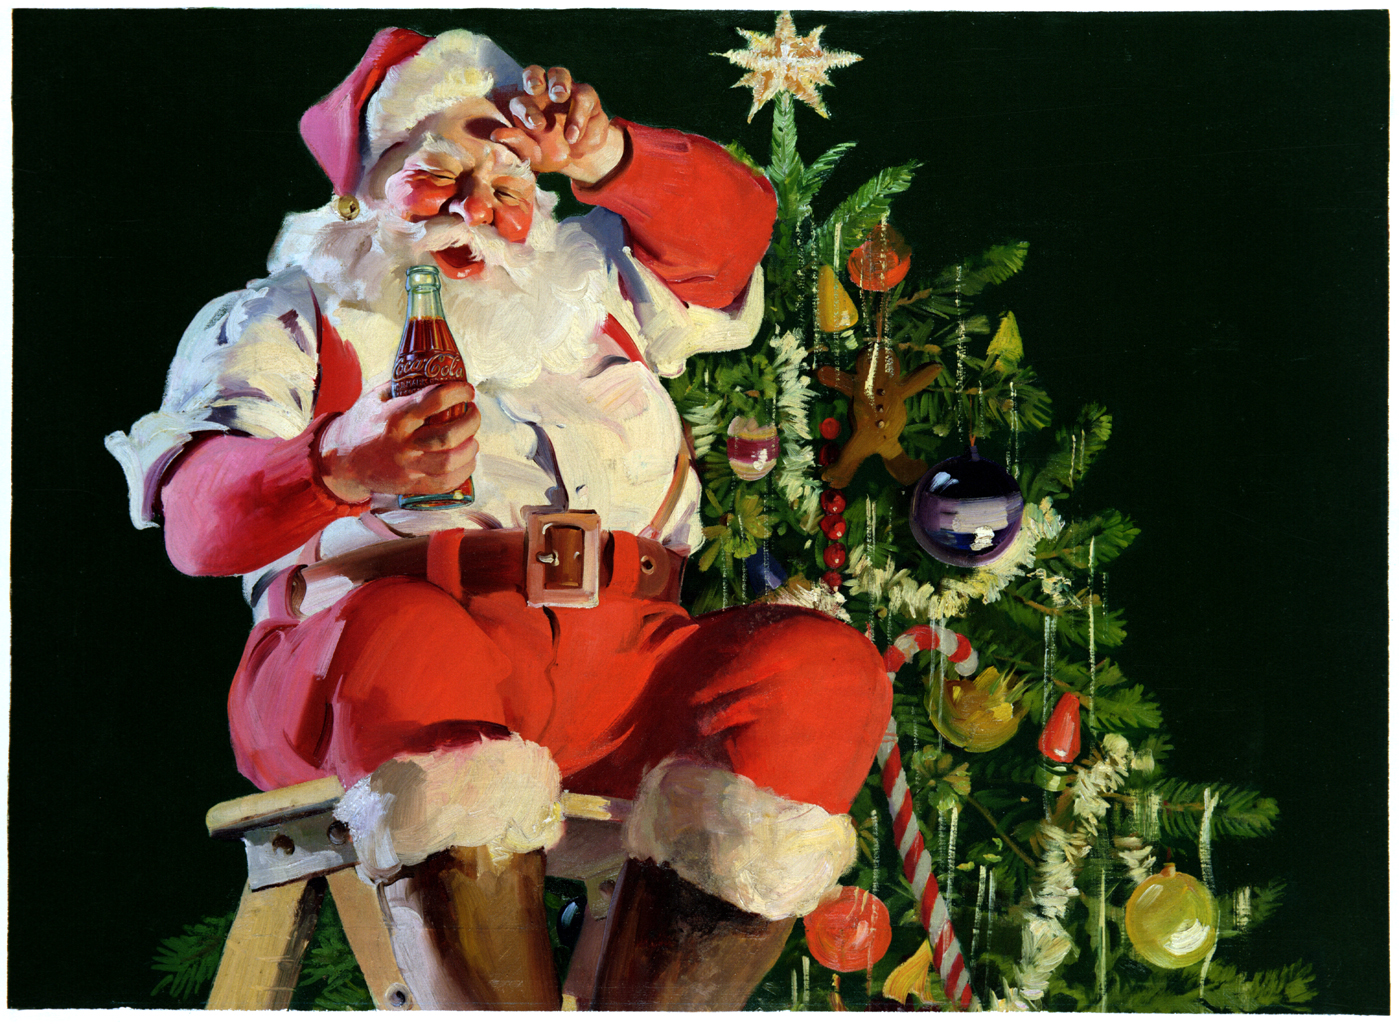 Santa Claus is depicted in this 1935 Coca-Cola advertisement by Haddon Sundblom, who painted St. Nick for the brand for decades.